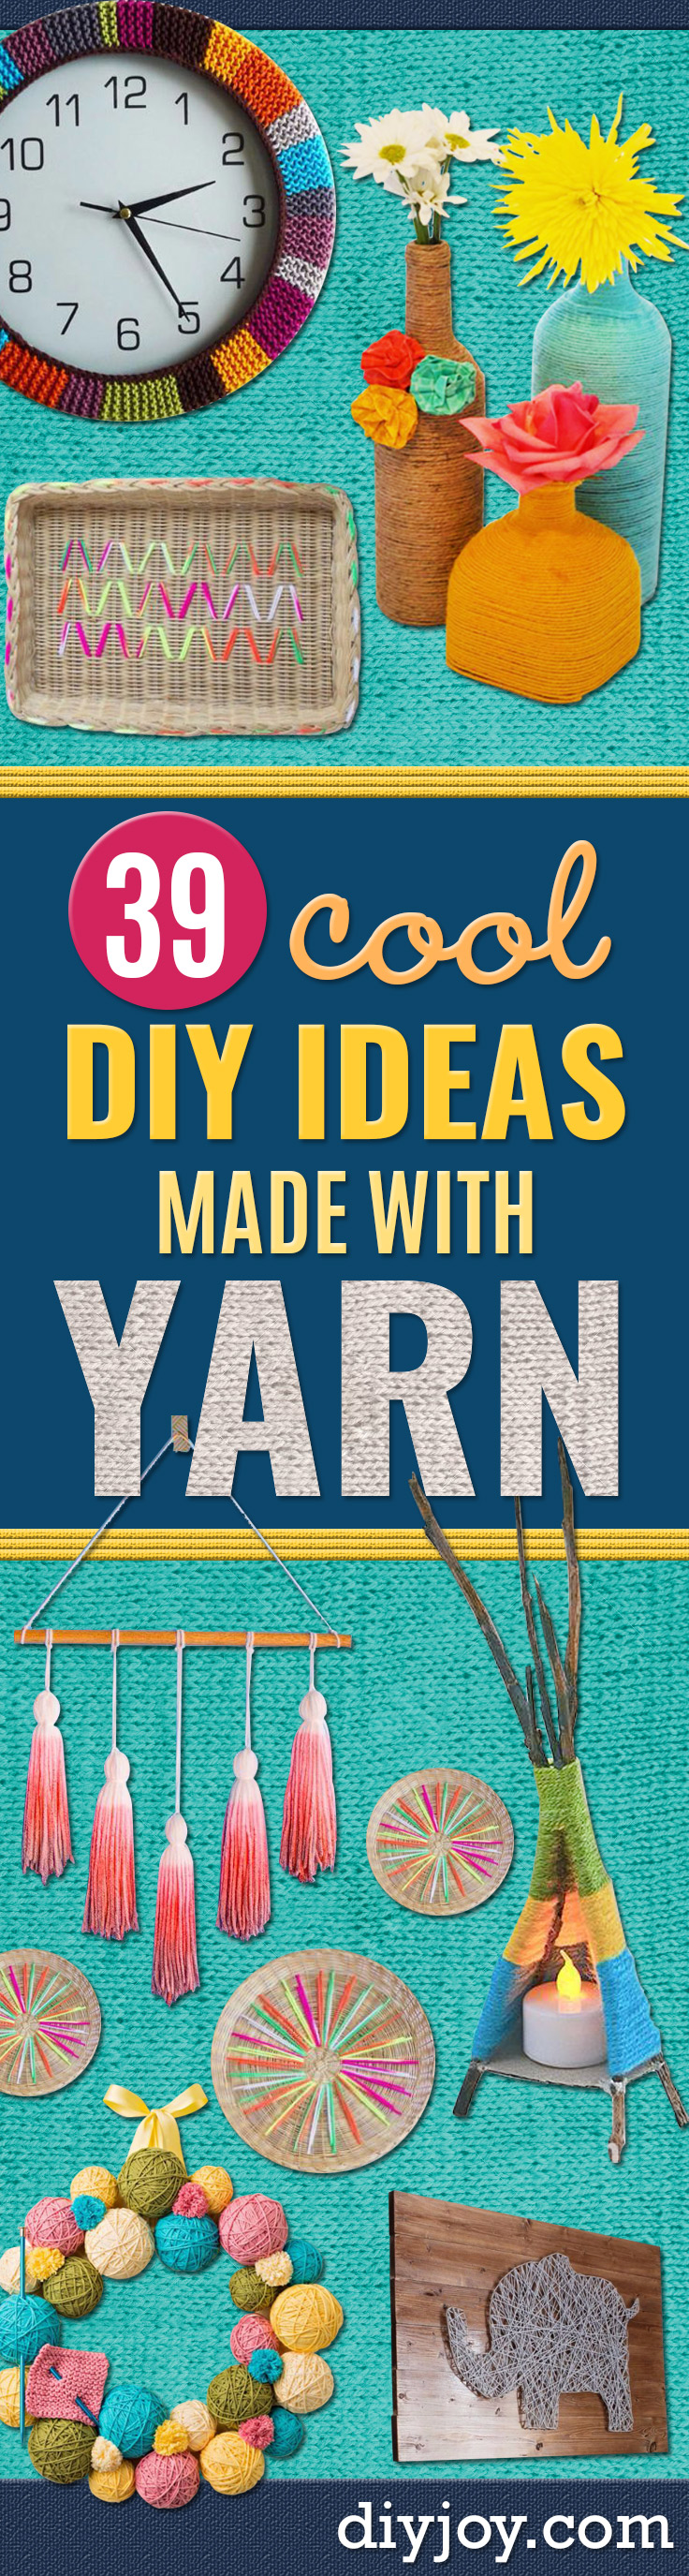 DIY Ideas With Yarn and Best Yarn Crafts - Wall Hangings, Easy Dream Catchers, Crochet Ideas for Teens, Adults and Kids - Knitting , No Sew and Weaving Projects Make Awesome Wall Art and Home Decor on A Budget